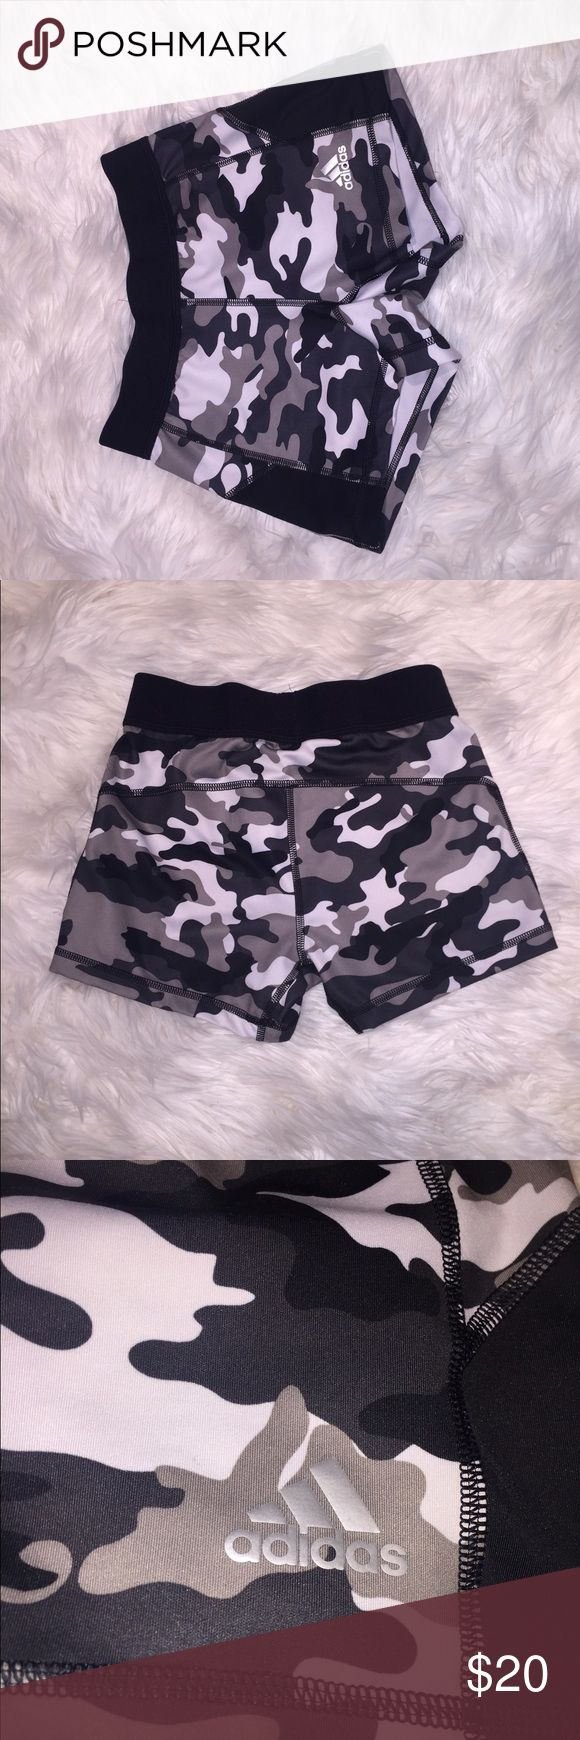 Adidas Running Shorts Adidas Camo dry fit running shorts. Never worn because they were too small on me. They fit snug. Never washed. Excellent condition. Adidas Shorts